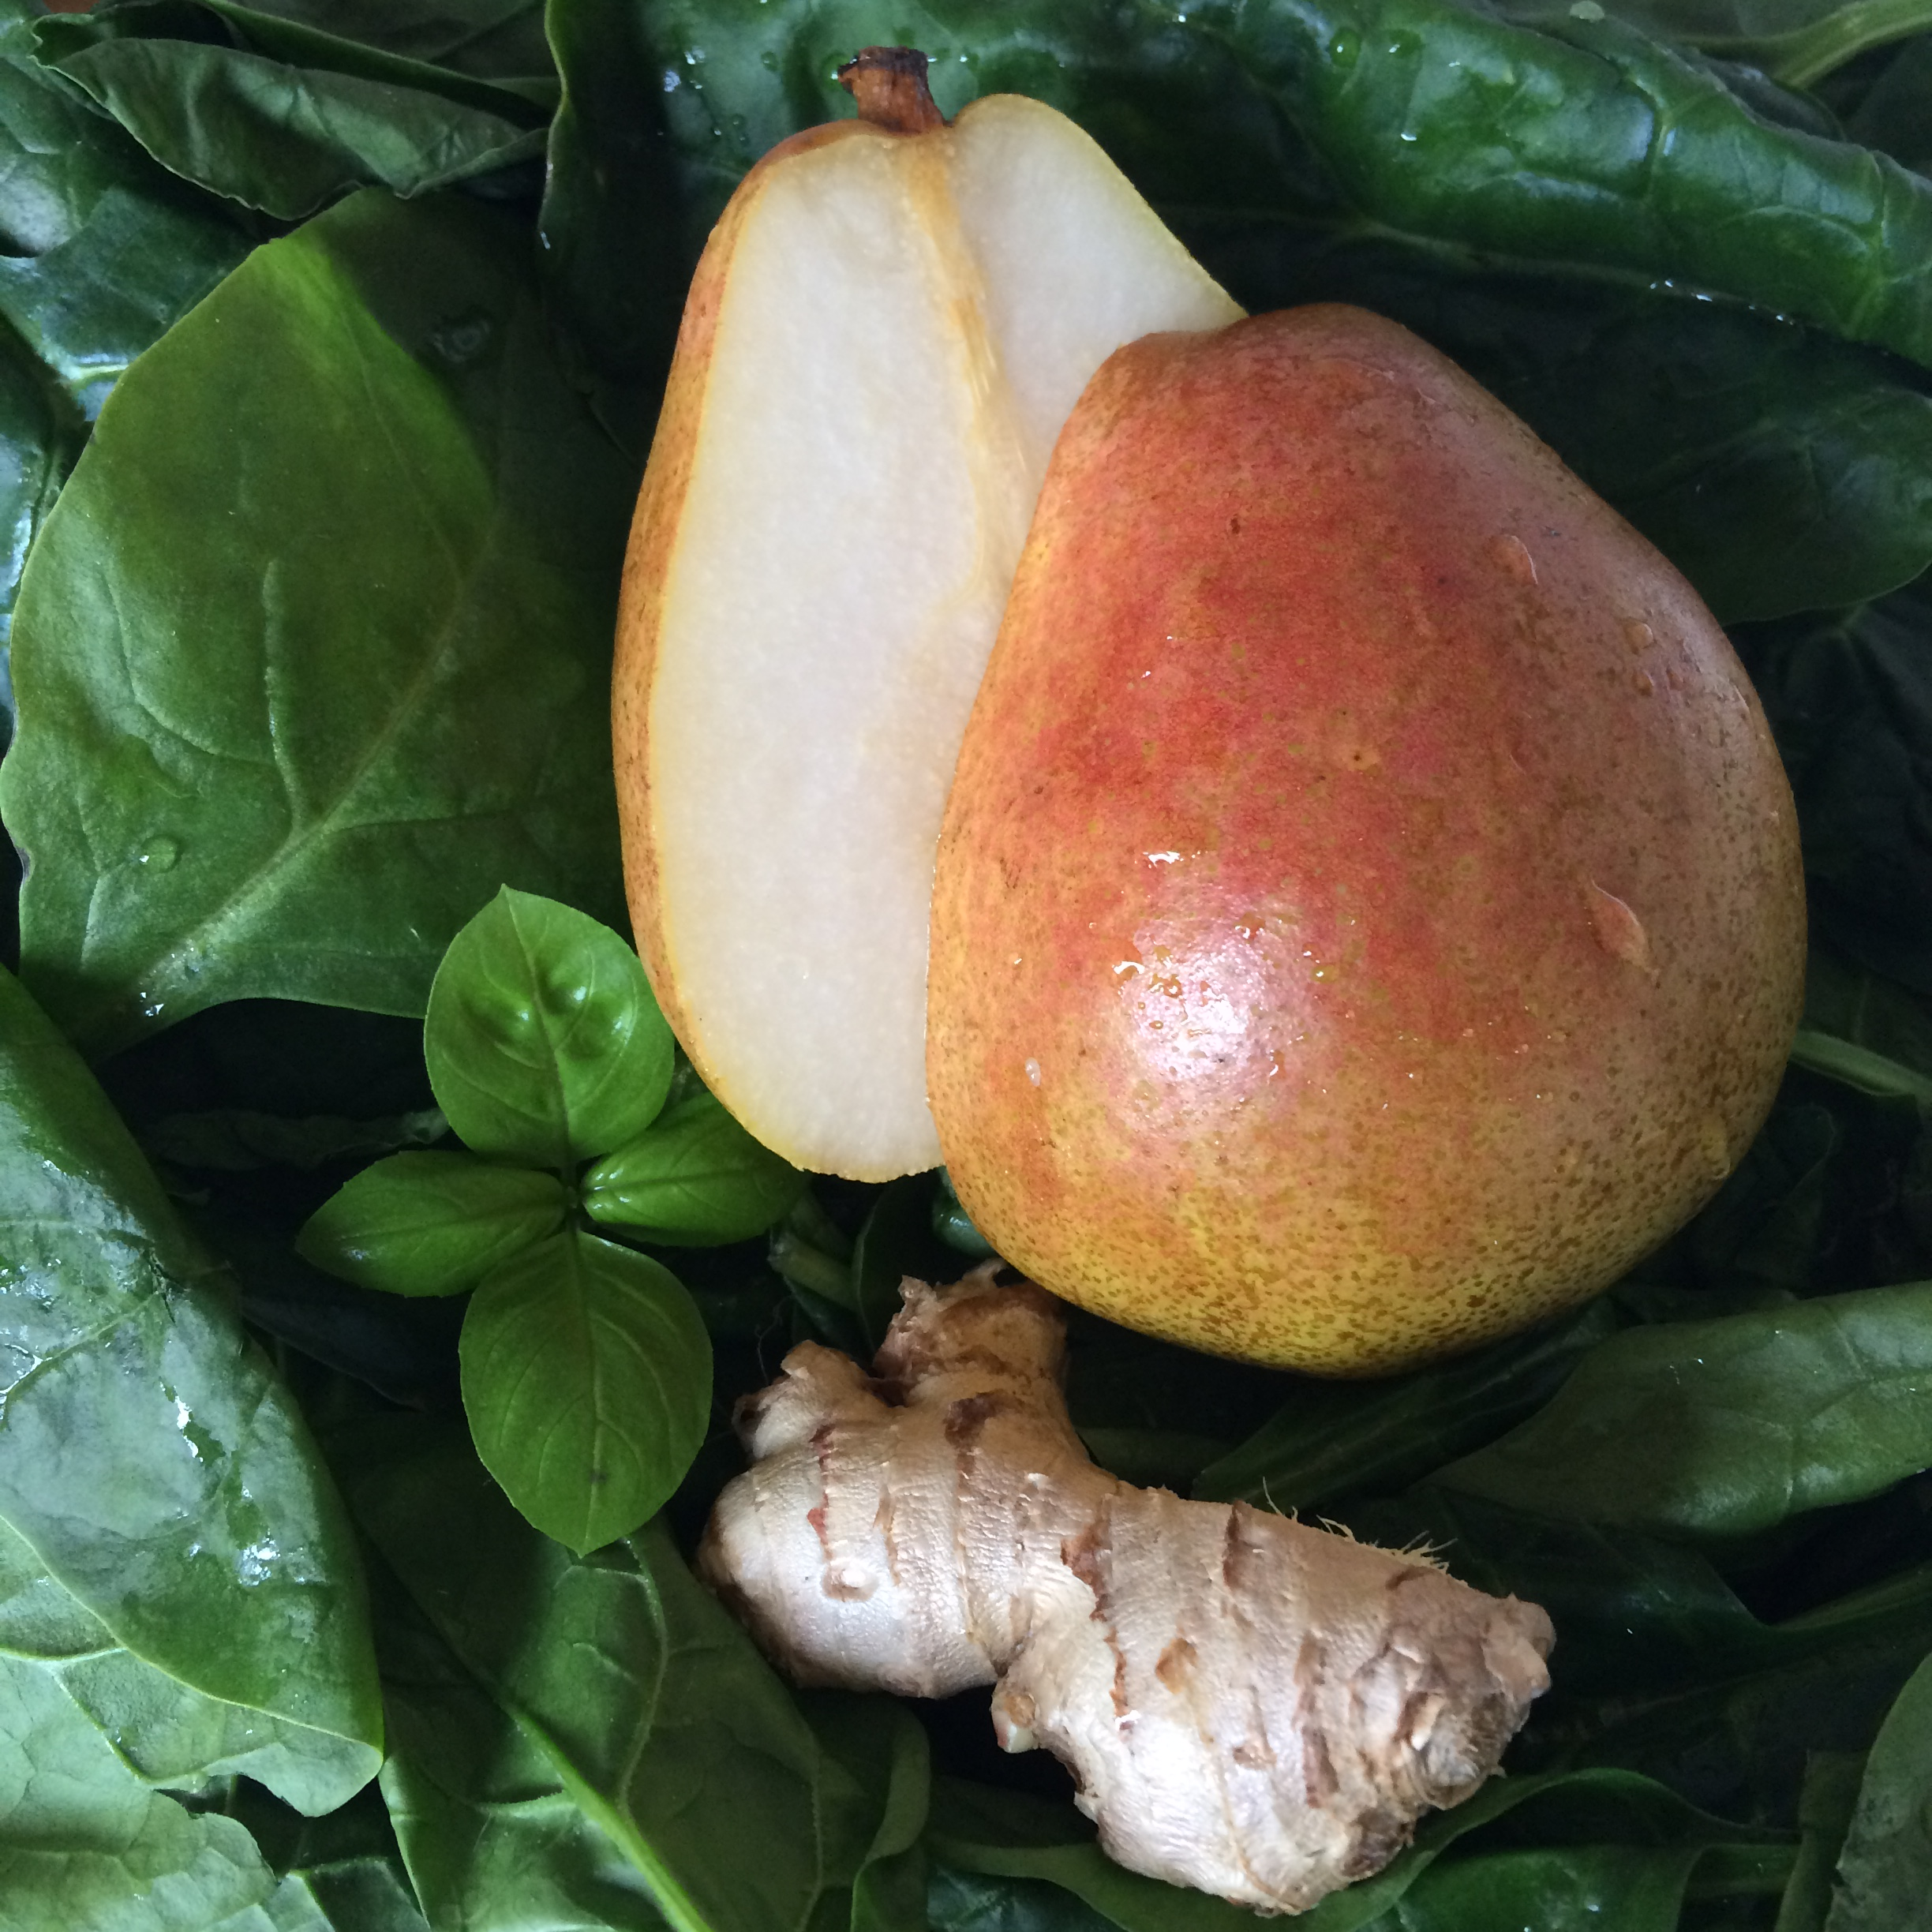 Pear Ginger Basil Spinach Green Smoothie Fresh Ingredients The Beauty of Simplicity by Salwa Petersen.jpg